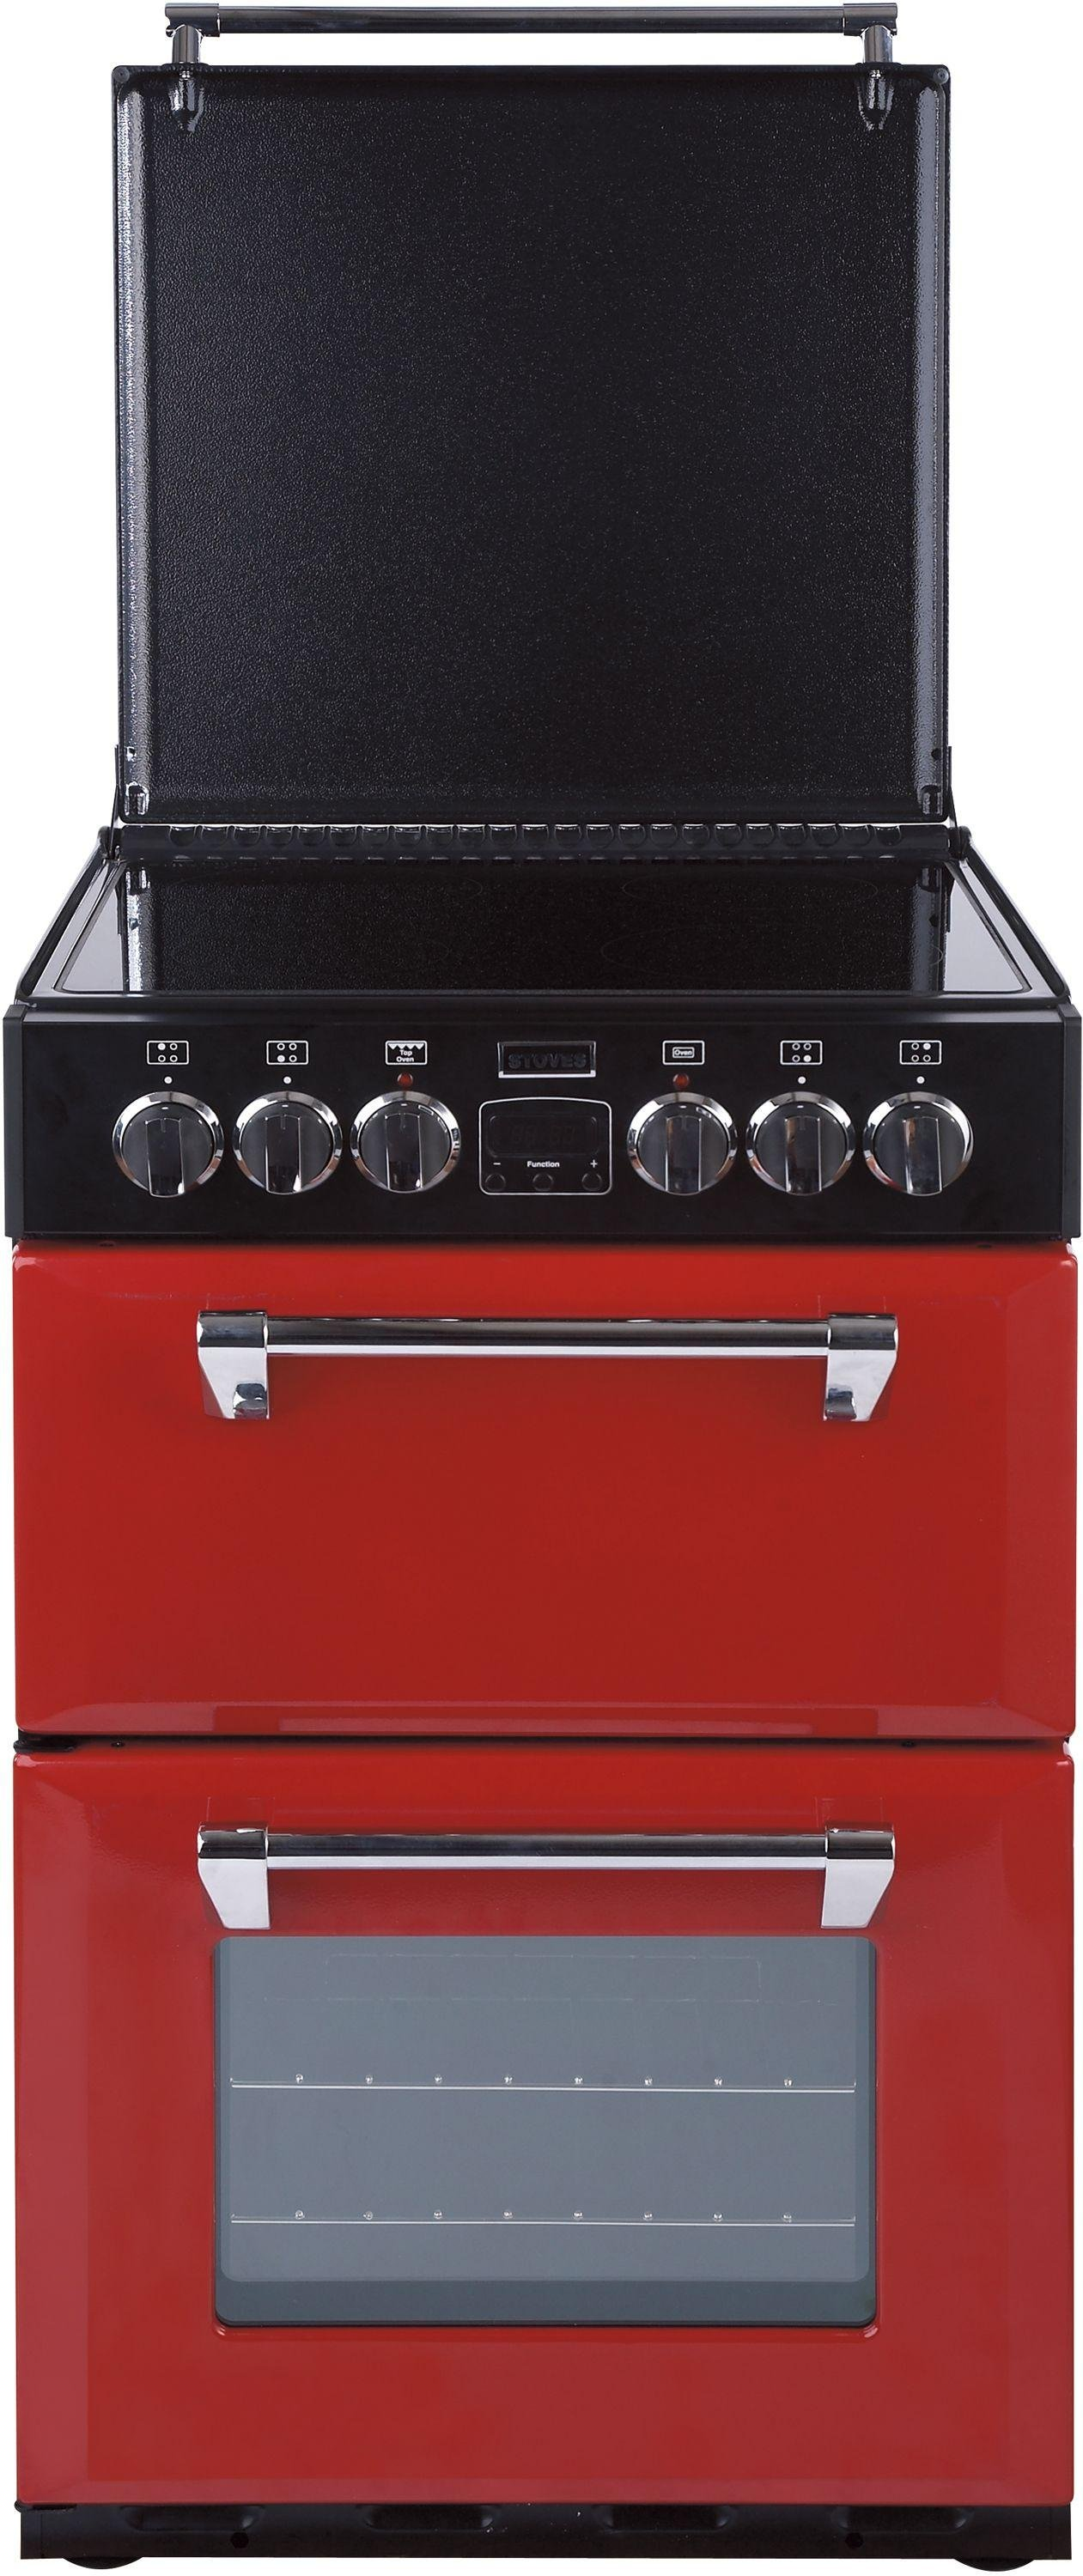 Stoves Richmond 550E MiniRange Double Cooker - Jalapeno